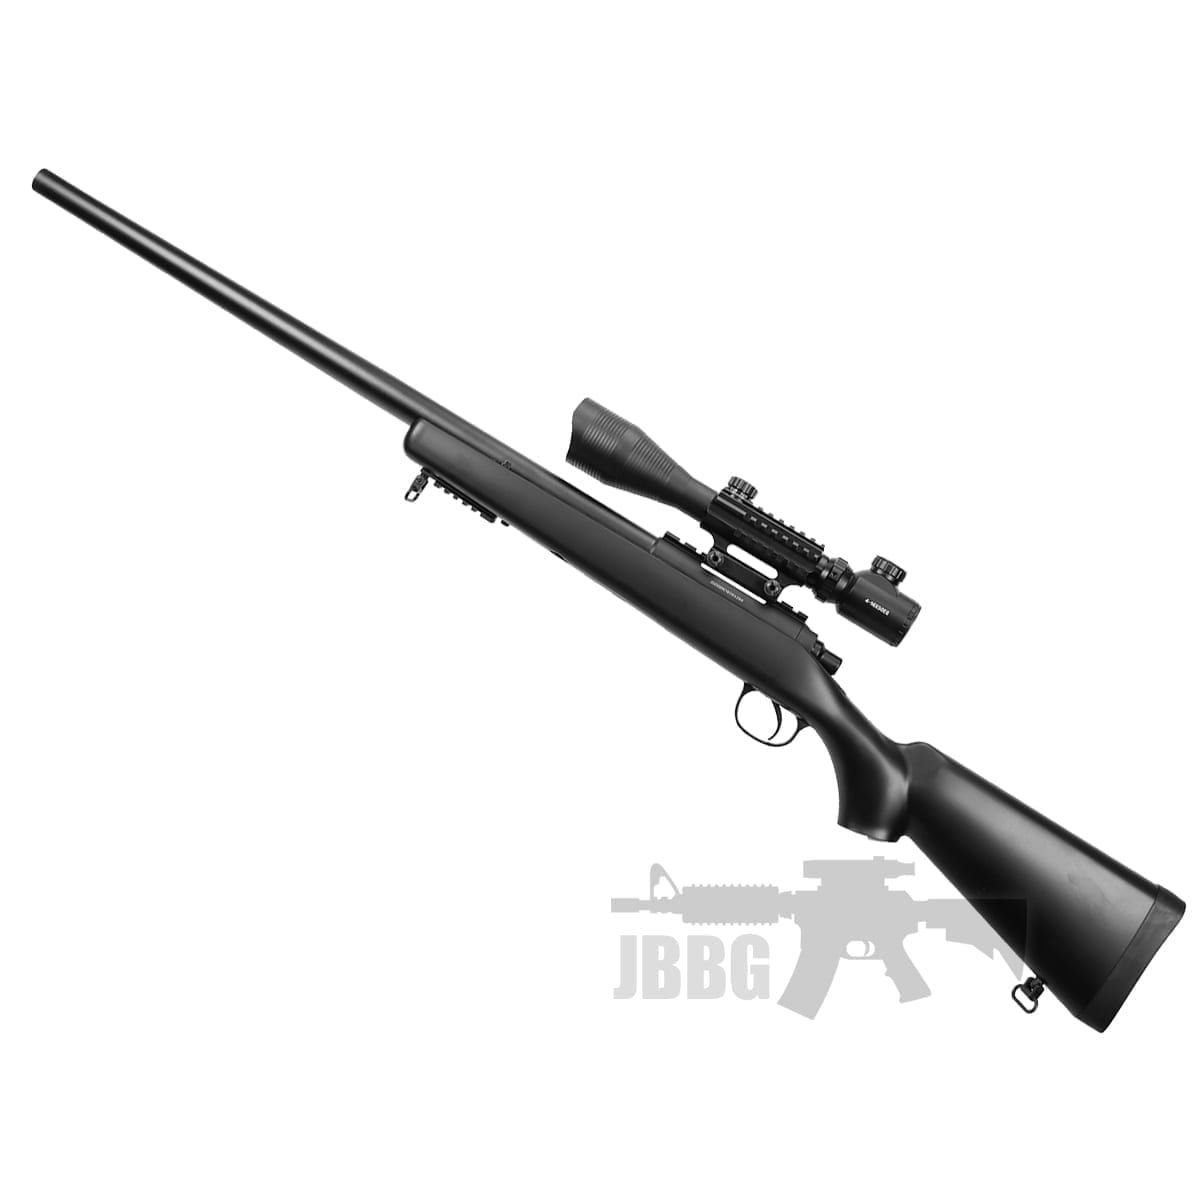 VSR11 Airsoft Spring Powered Sniper Rifle (Rifle Only)